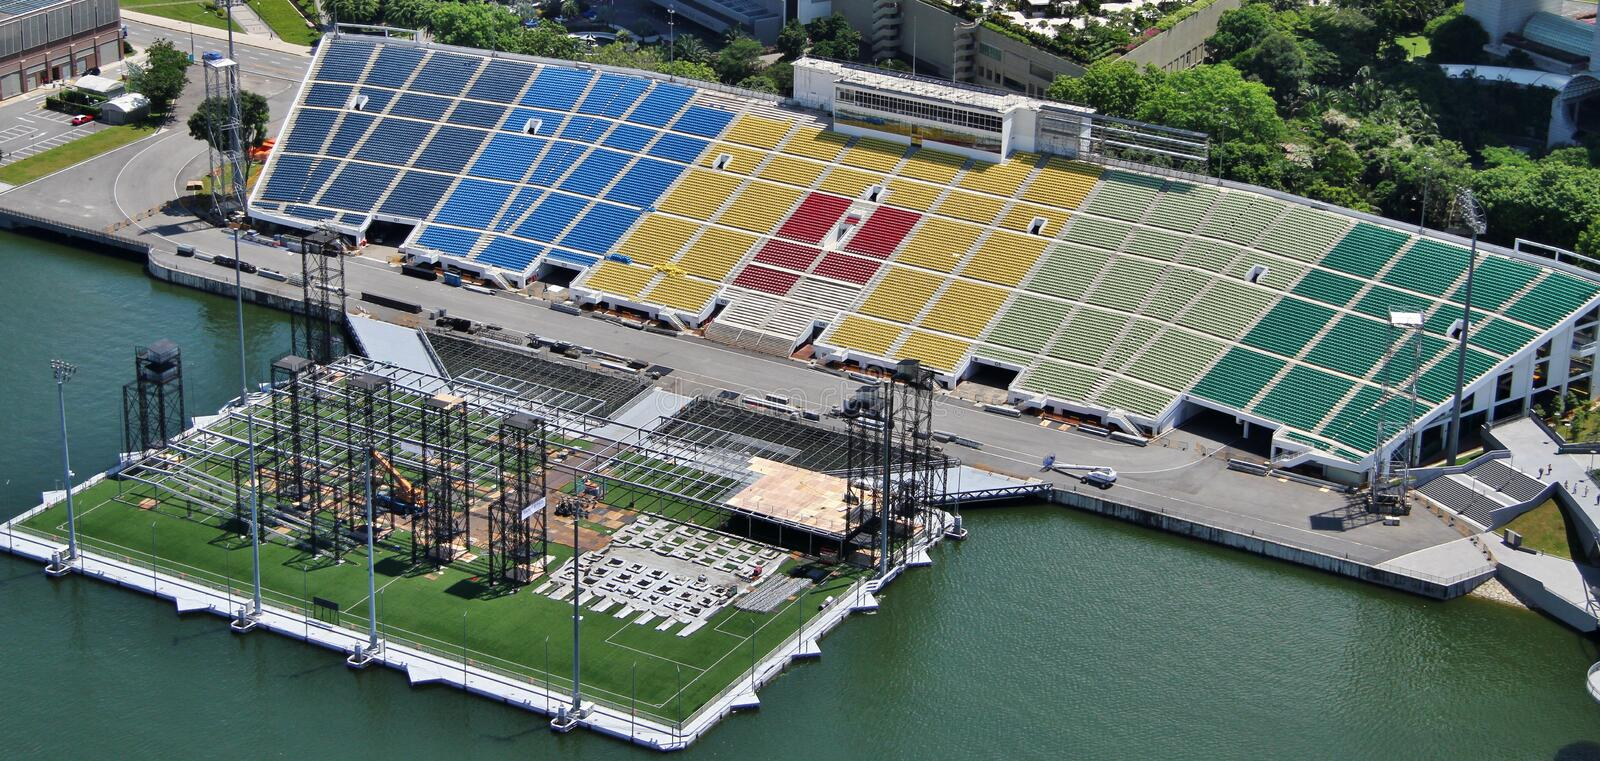 Marina Bay Floating Platform. Aerial view of the Marina Bay Floating Platform from Marina Bay Sands Skypark, with its coloured sectors visible. Photo taken on 17 royalty free stock photo